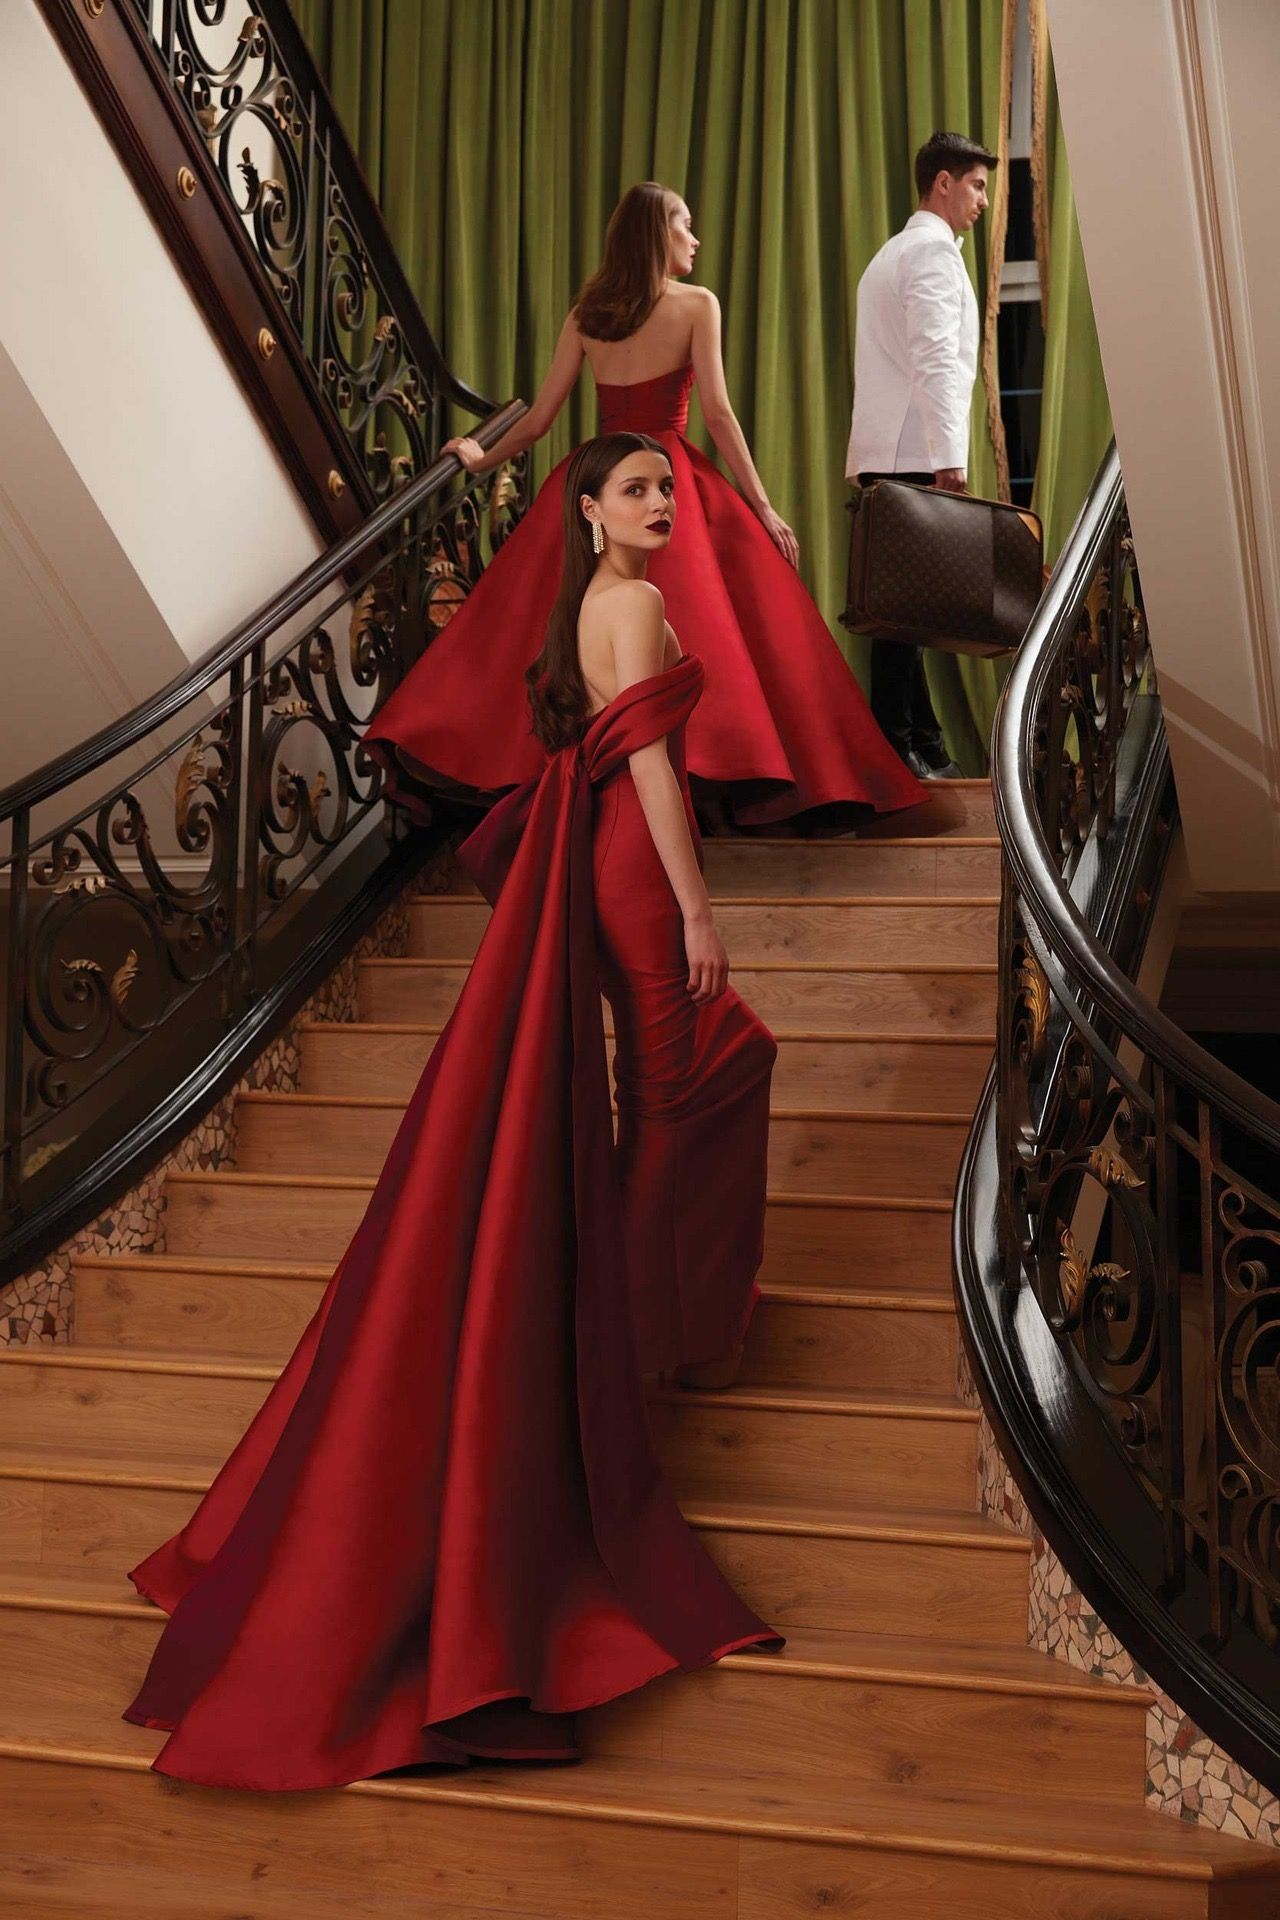 Pin by avela on wed inspo pinterest haute couture and couture